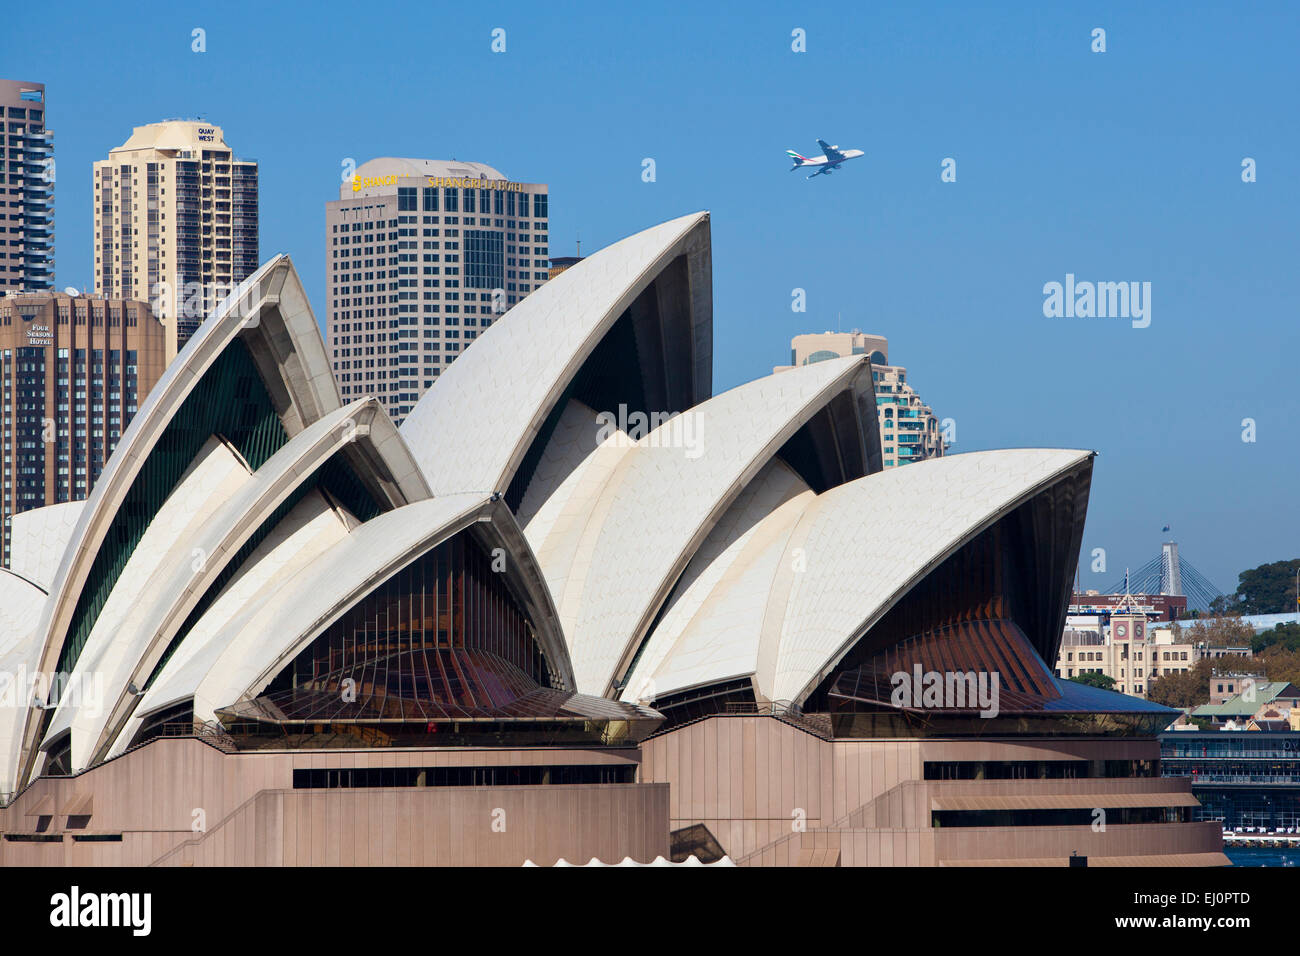 City in new south wales australia